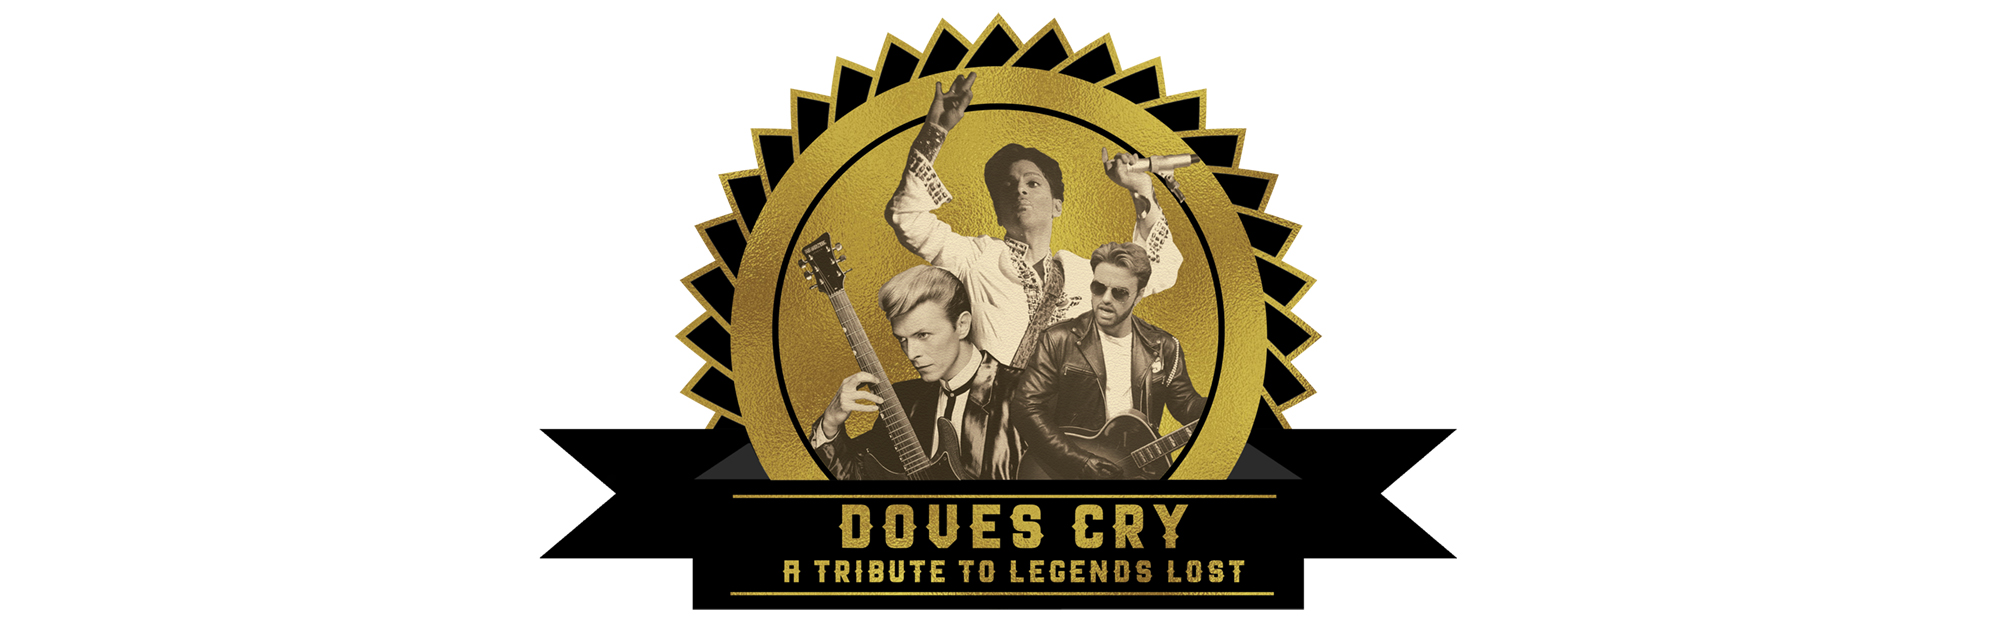 Doves Cry: A Tribute to Legends Lost